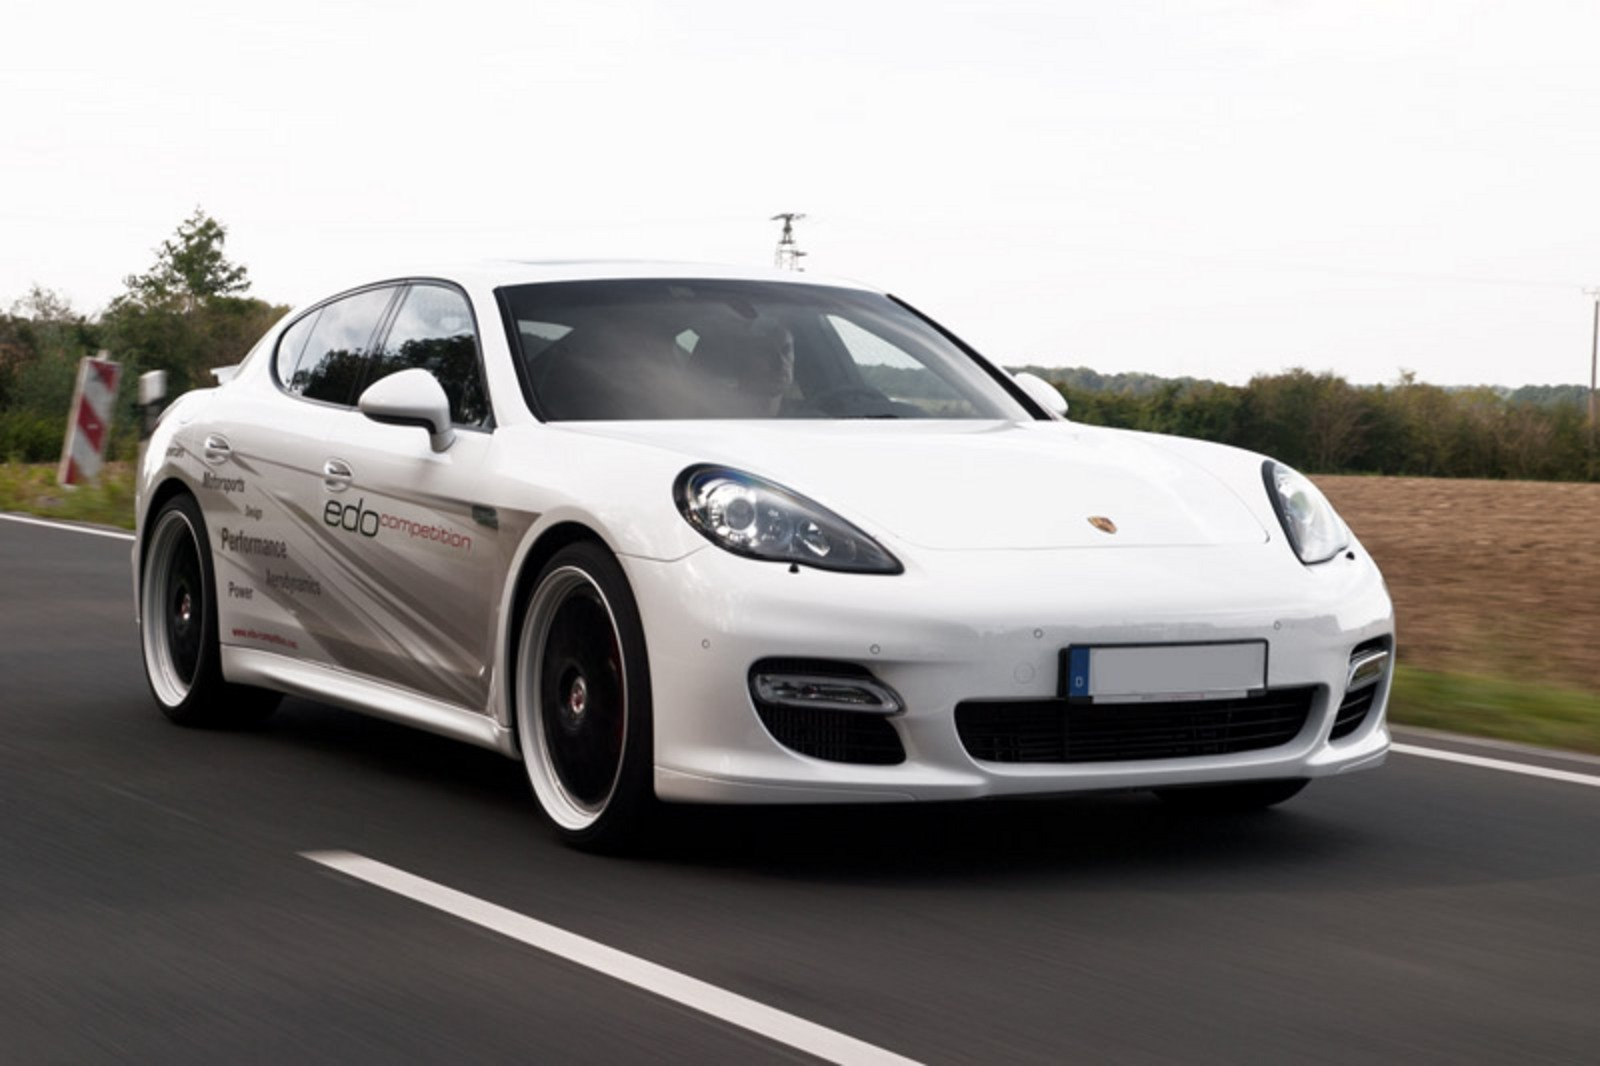 2012 porsche panamera turbo s by edo competition review top speed. Black Bedroom Furniture Sets. Home Design Ideas